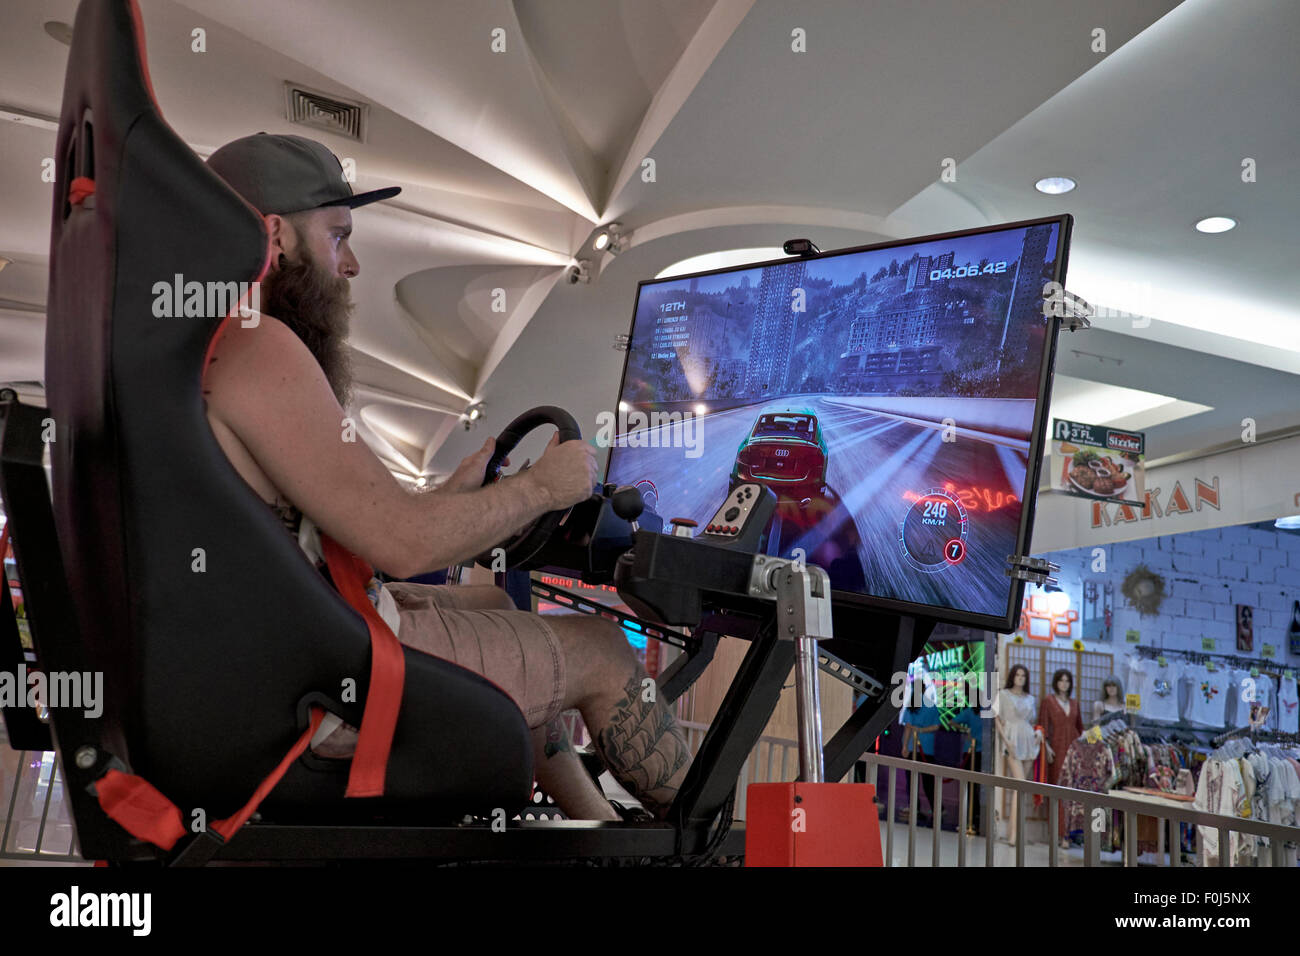 Person playing a Virtual Reality motor racing game. Ripley's Believe it or Not Pattaya Thailand. - Stock Image